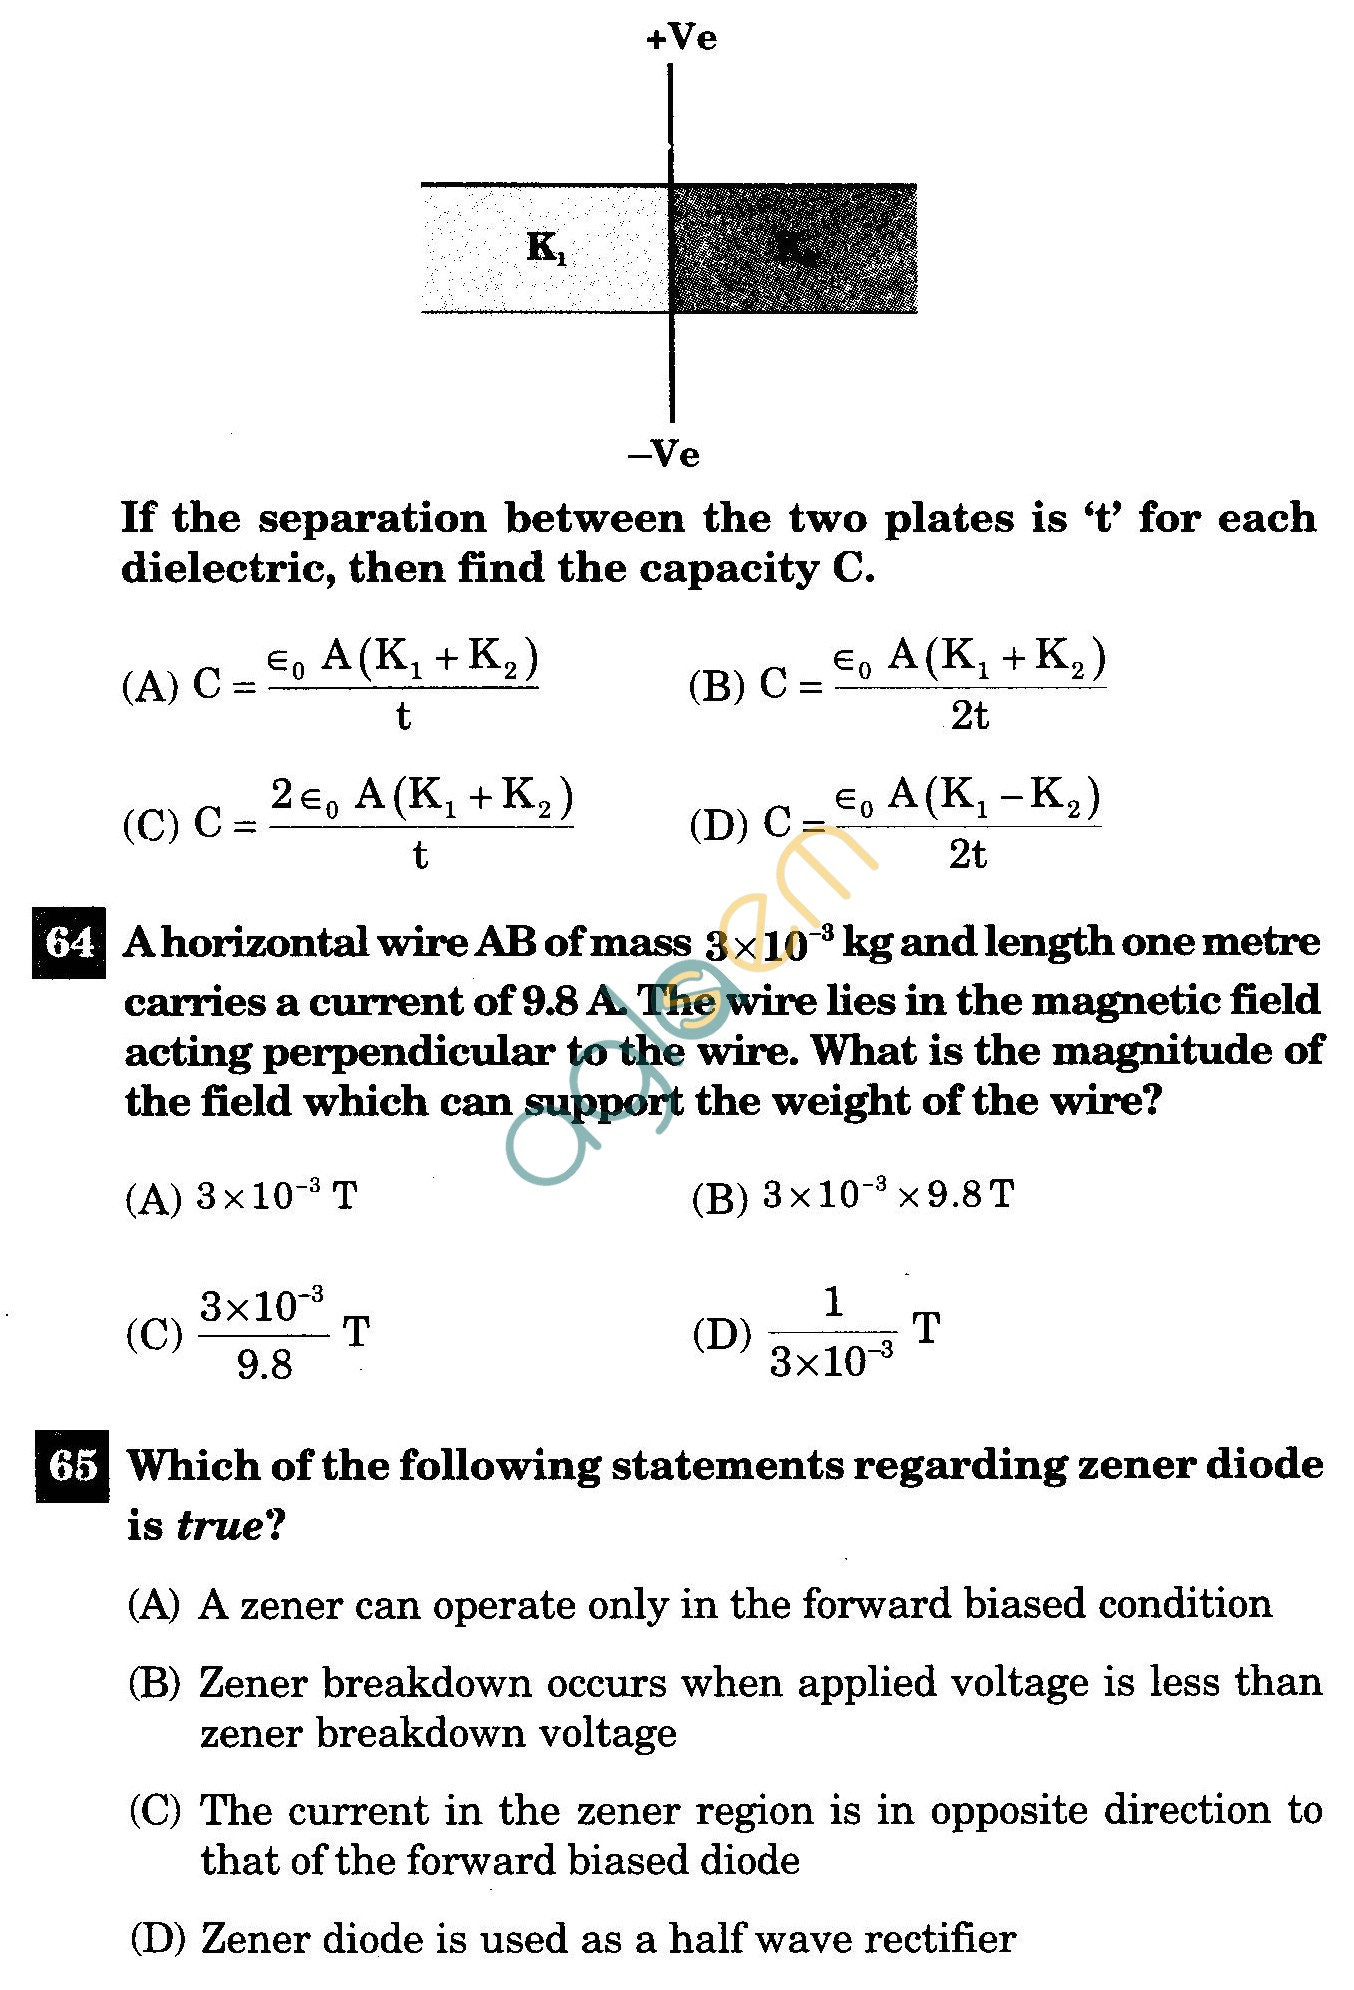 NSTSE 2011 Class XII PCB Question Paper with Answers - Physics